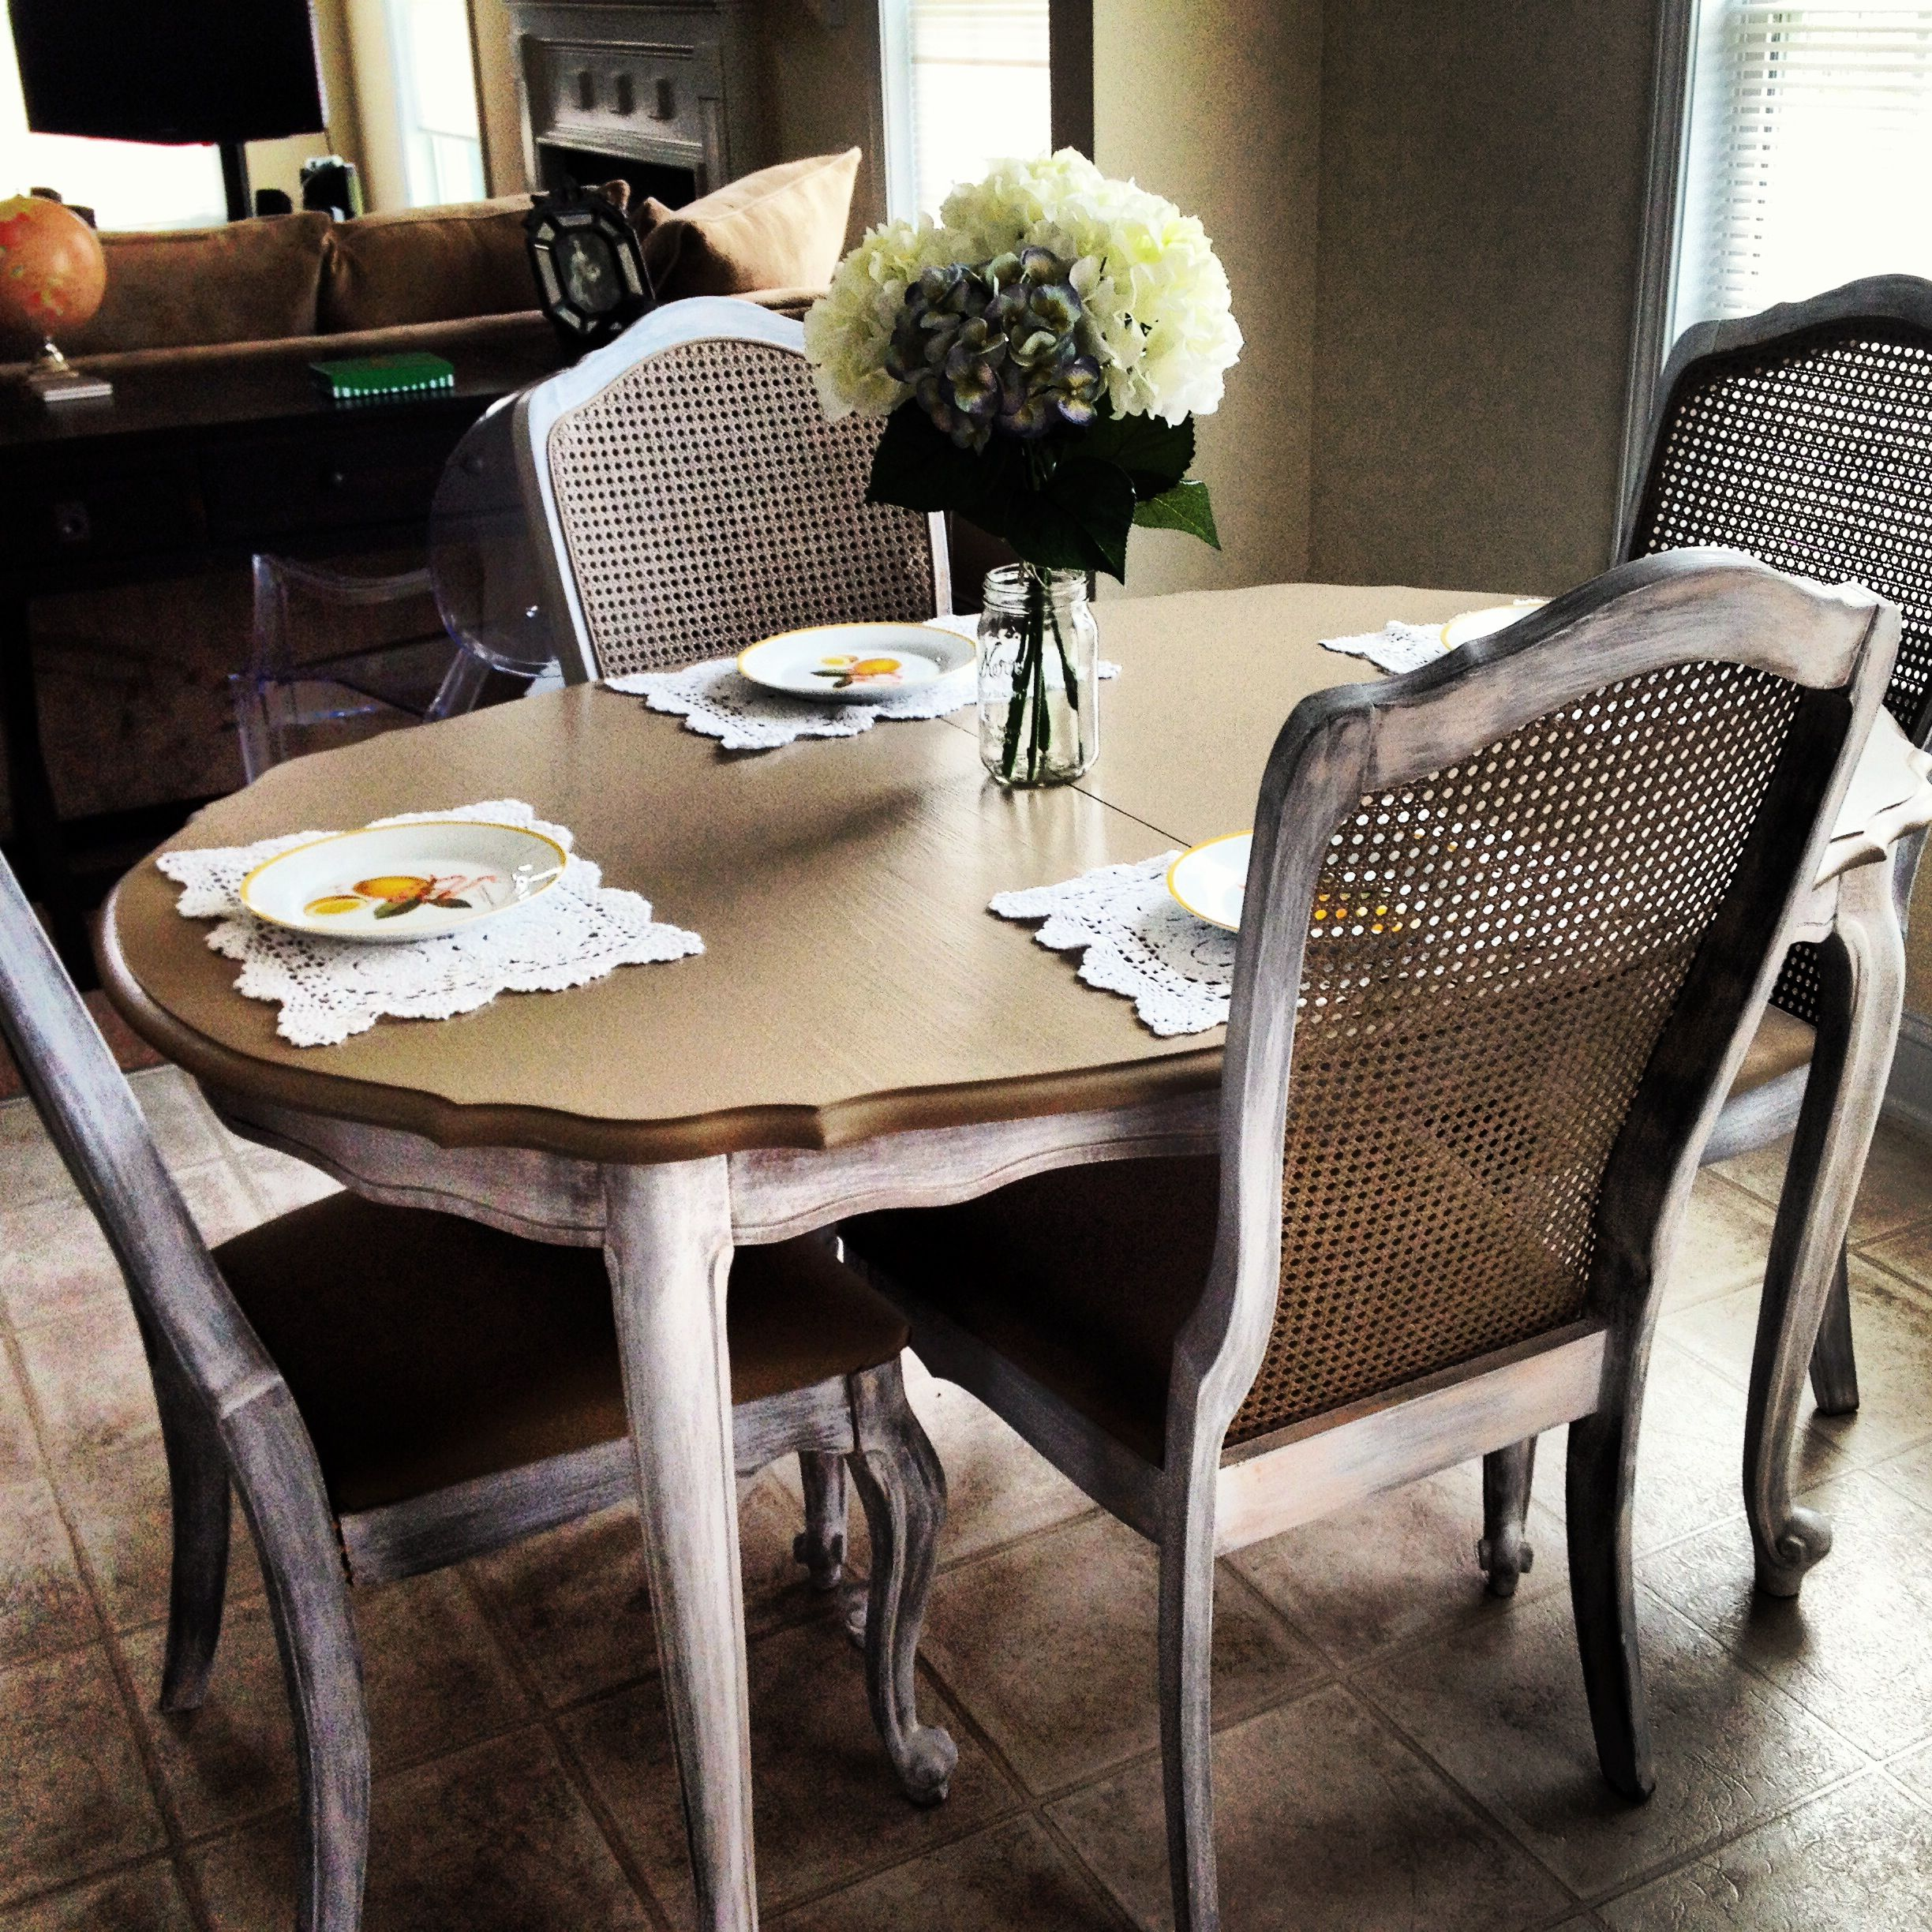 My Diningroomtable I Refinished And Reupholstered Whitewashed